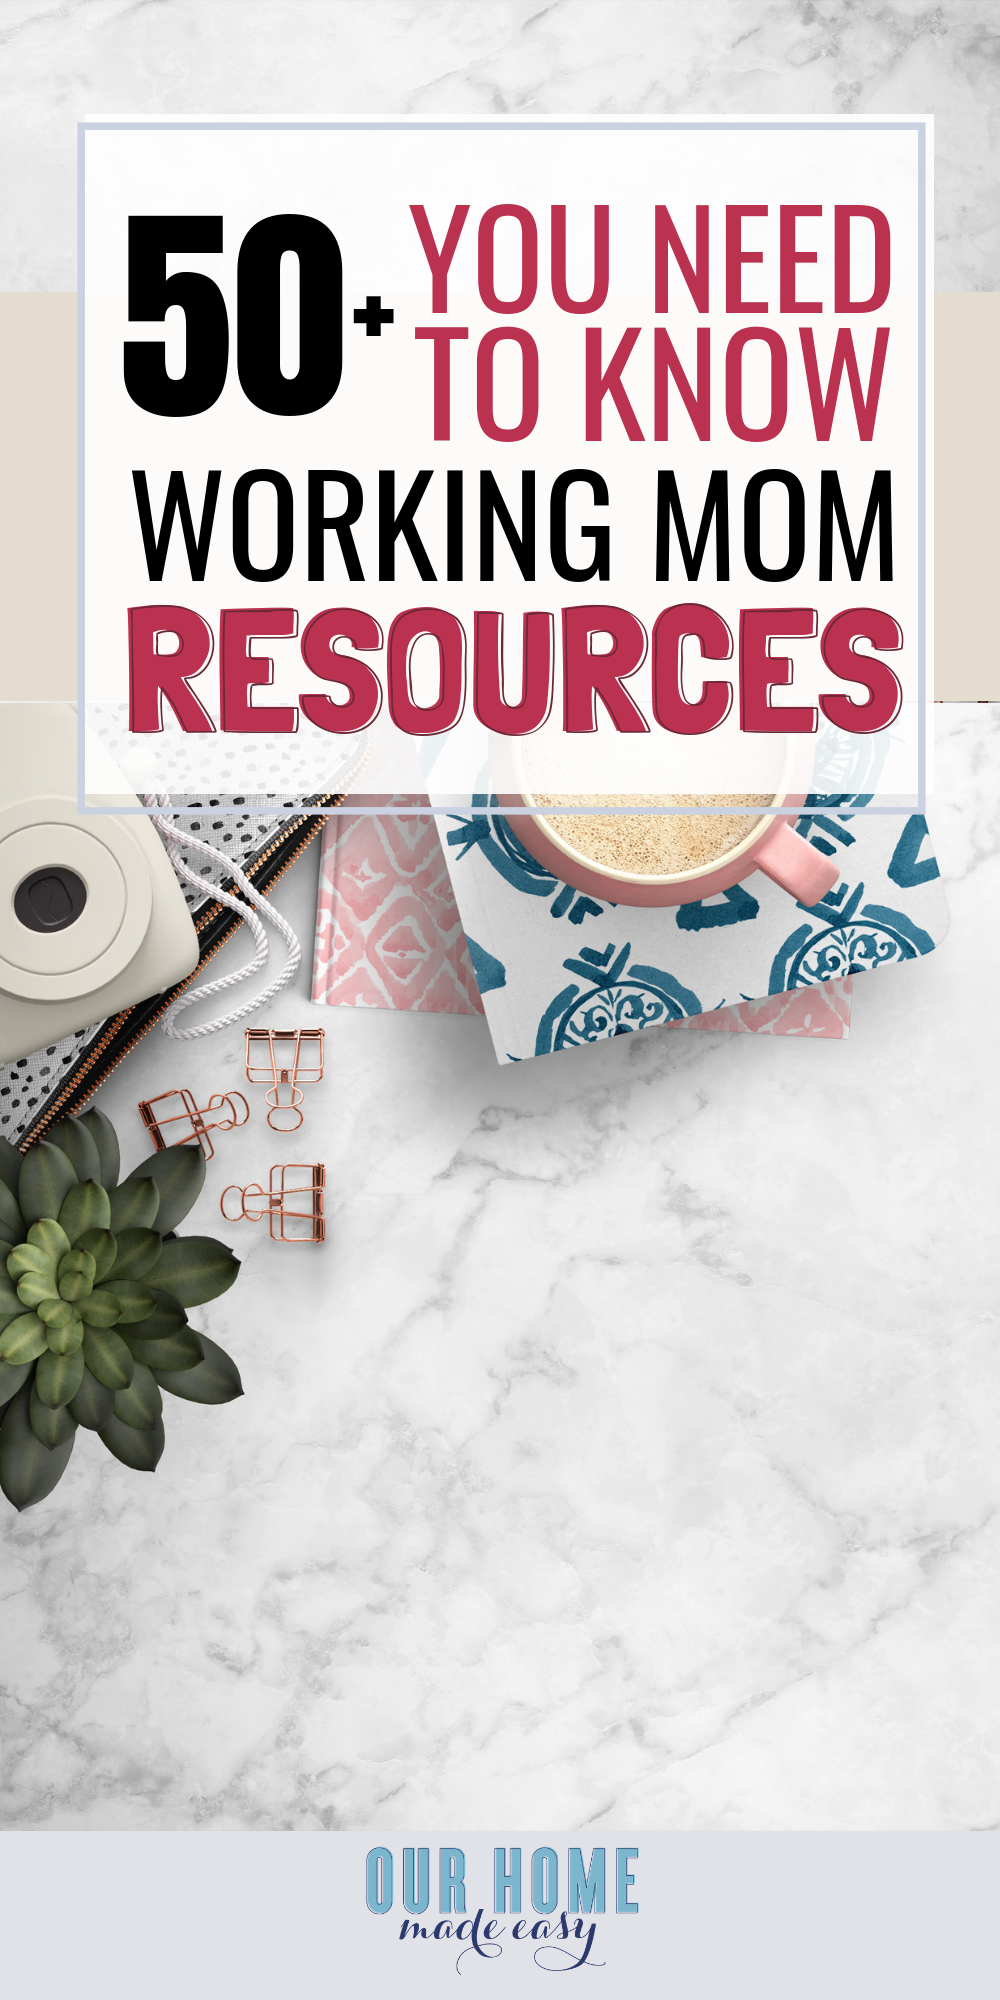 This list of working mom resources are helpful tools that every working mom needs to know